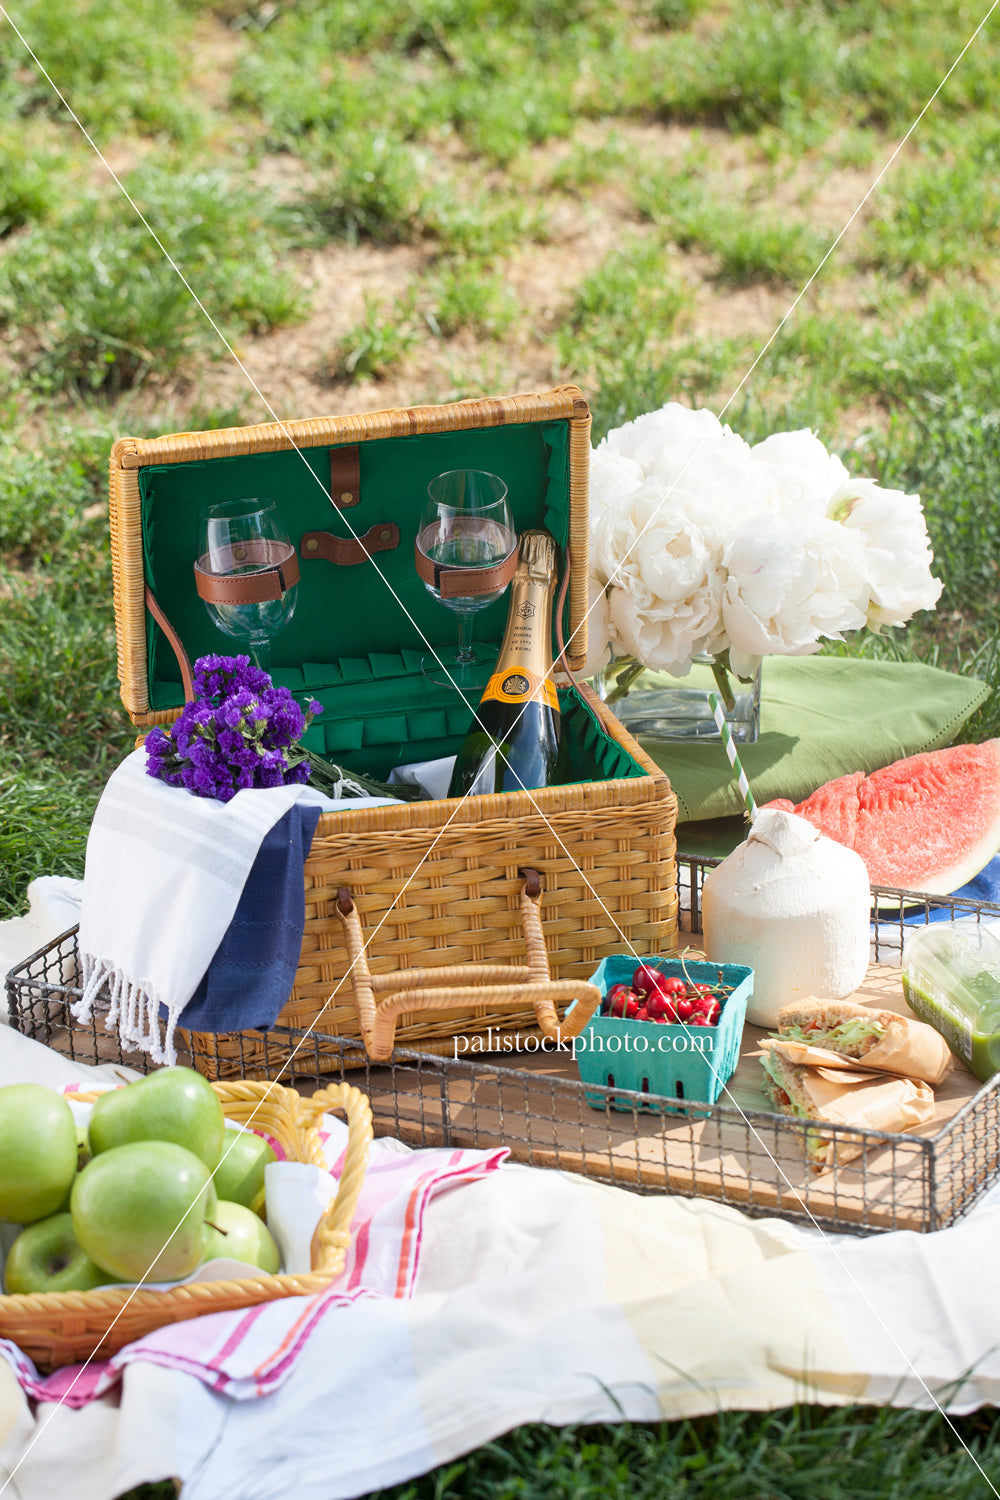 Summer Picnic in Central Park